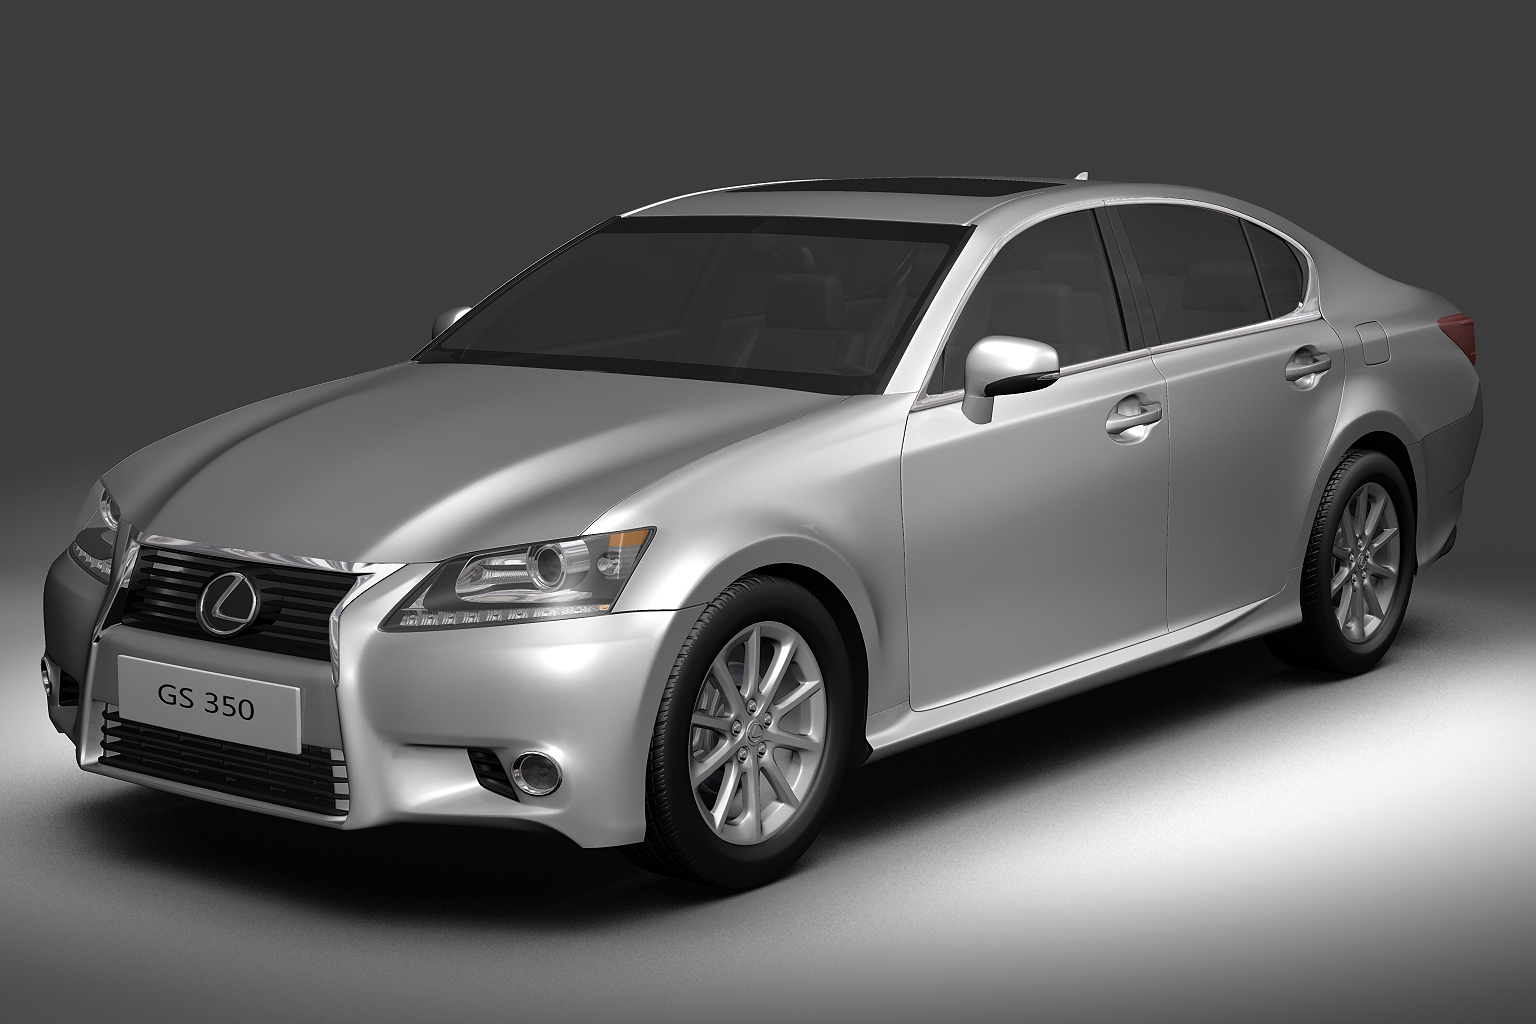 2013 lexus gs350 model 3d 3ds max fbx c4d hr hr xsi obj 136258